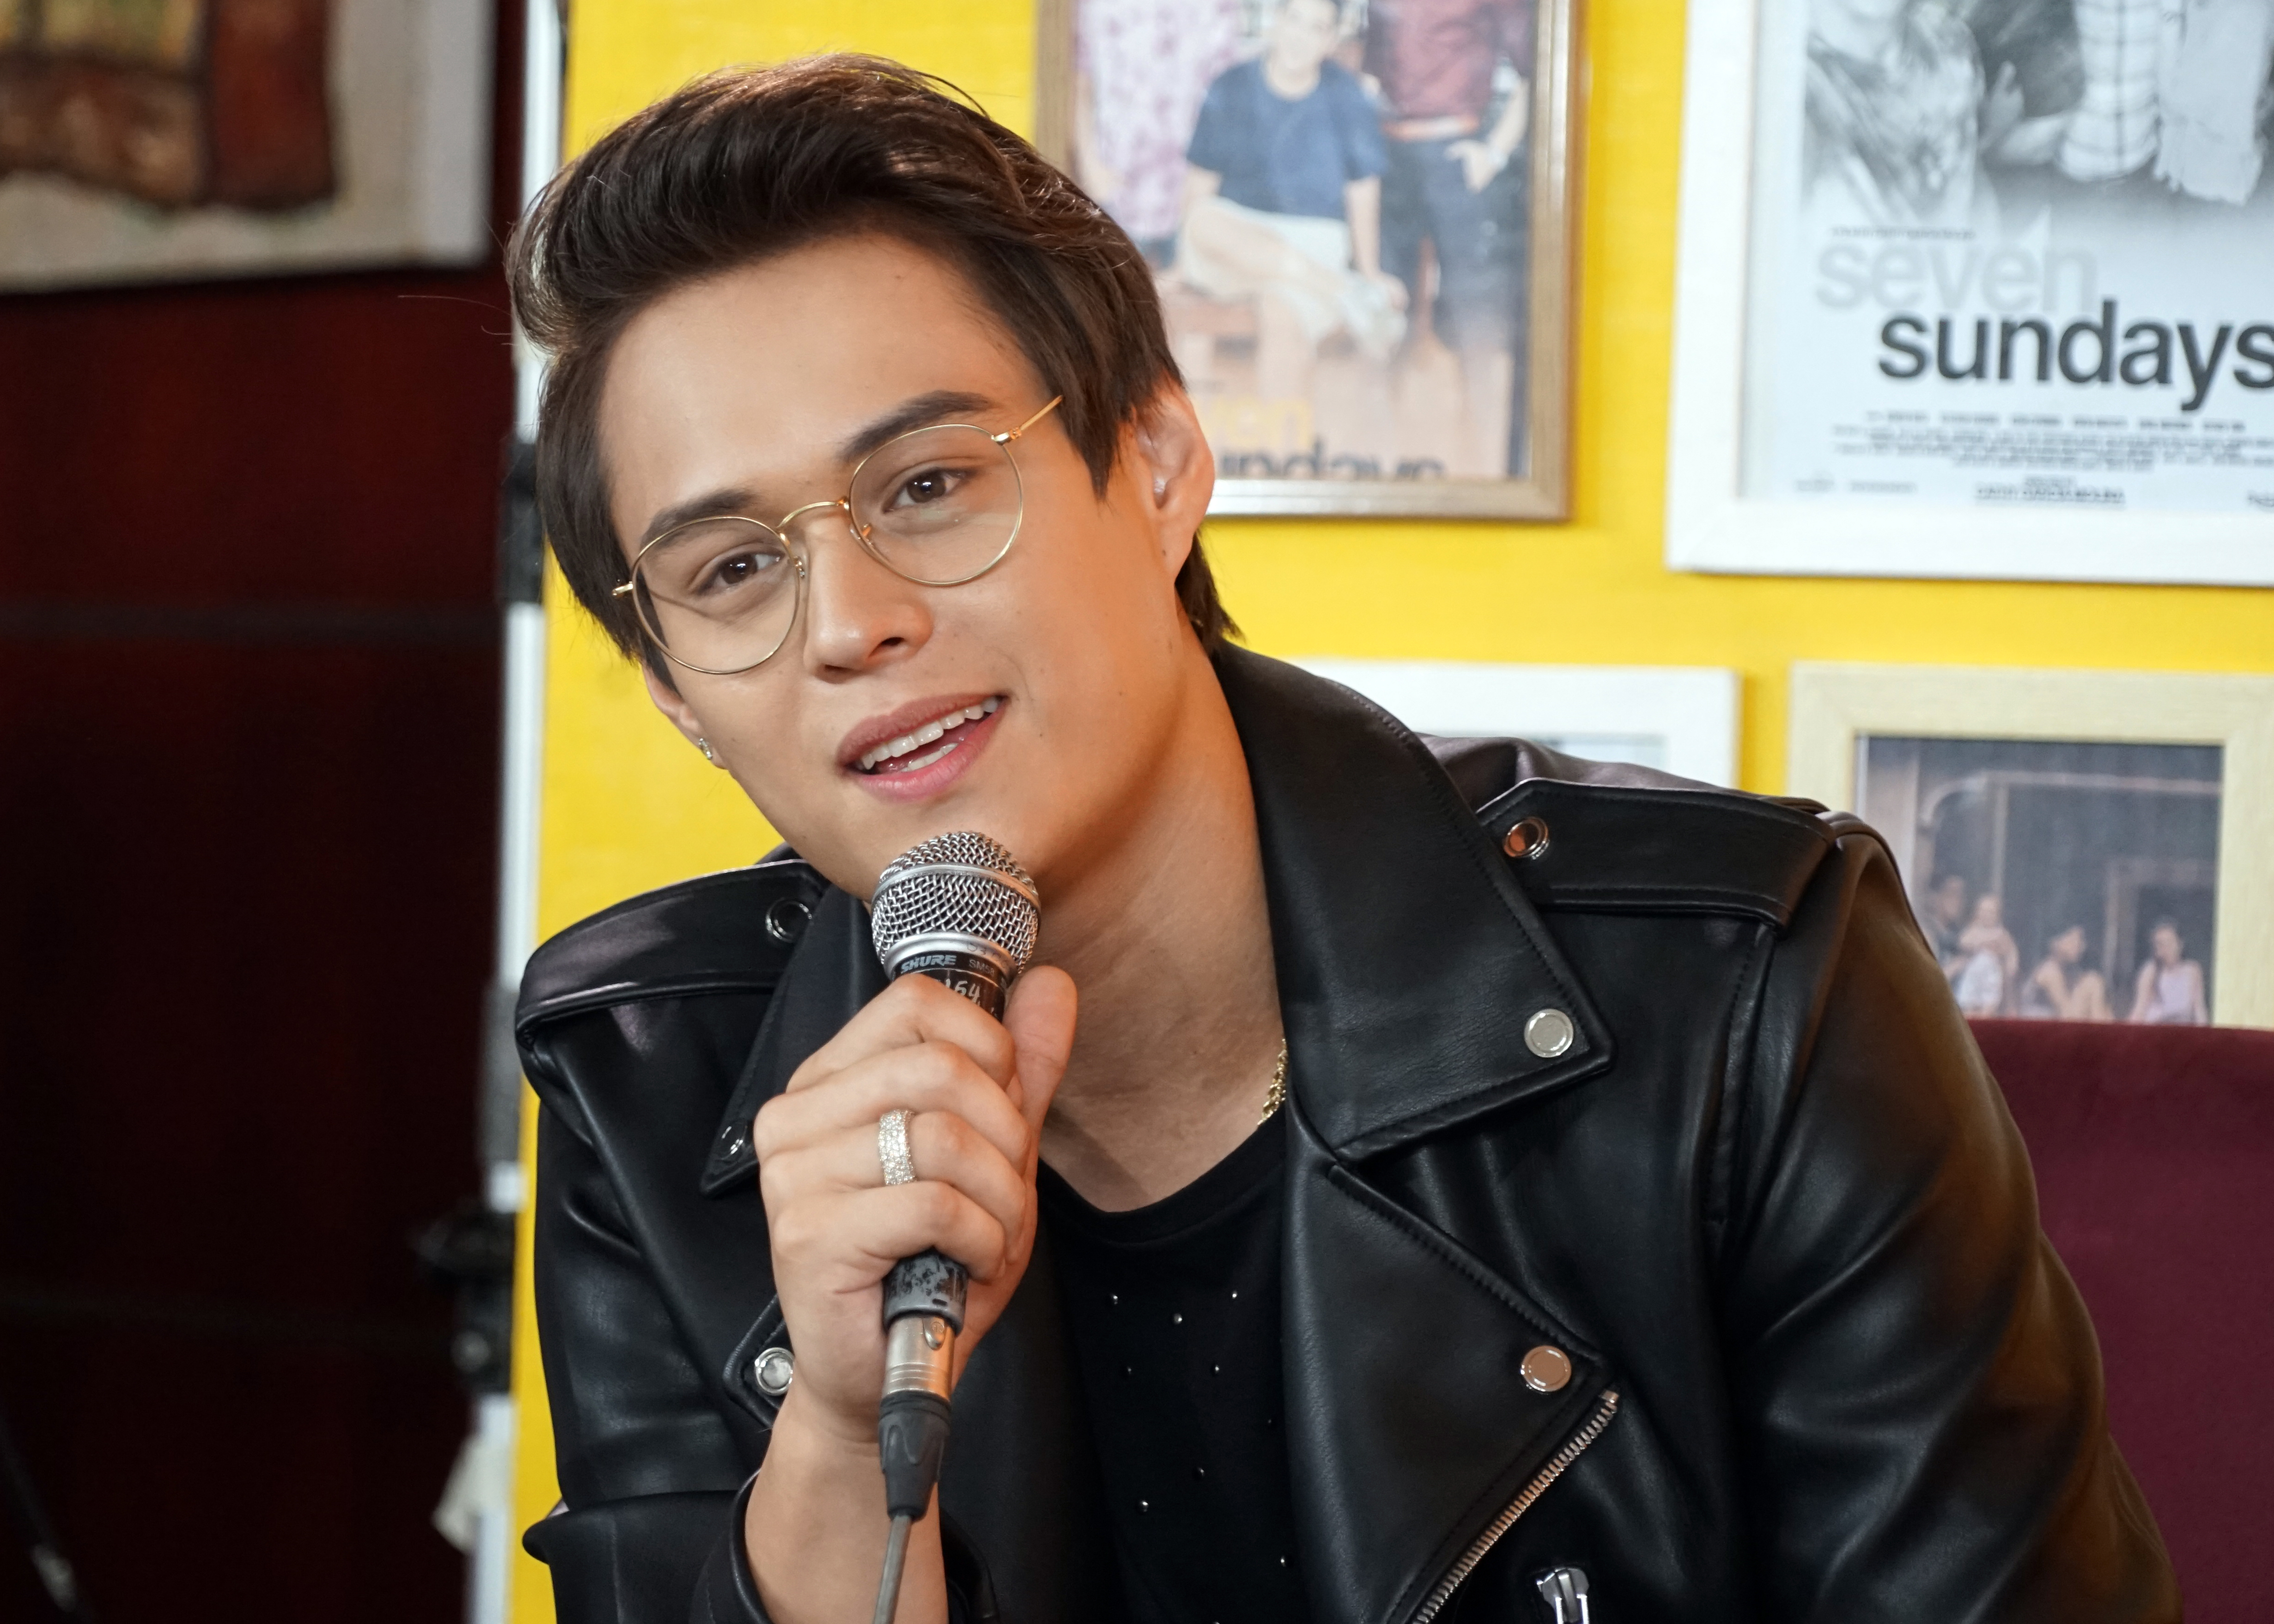 Enrique Gil says he just cried while doing the eulogy scene in the movie.